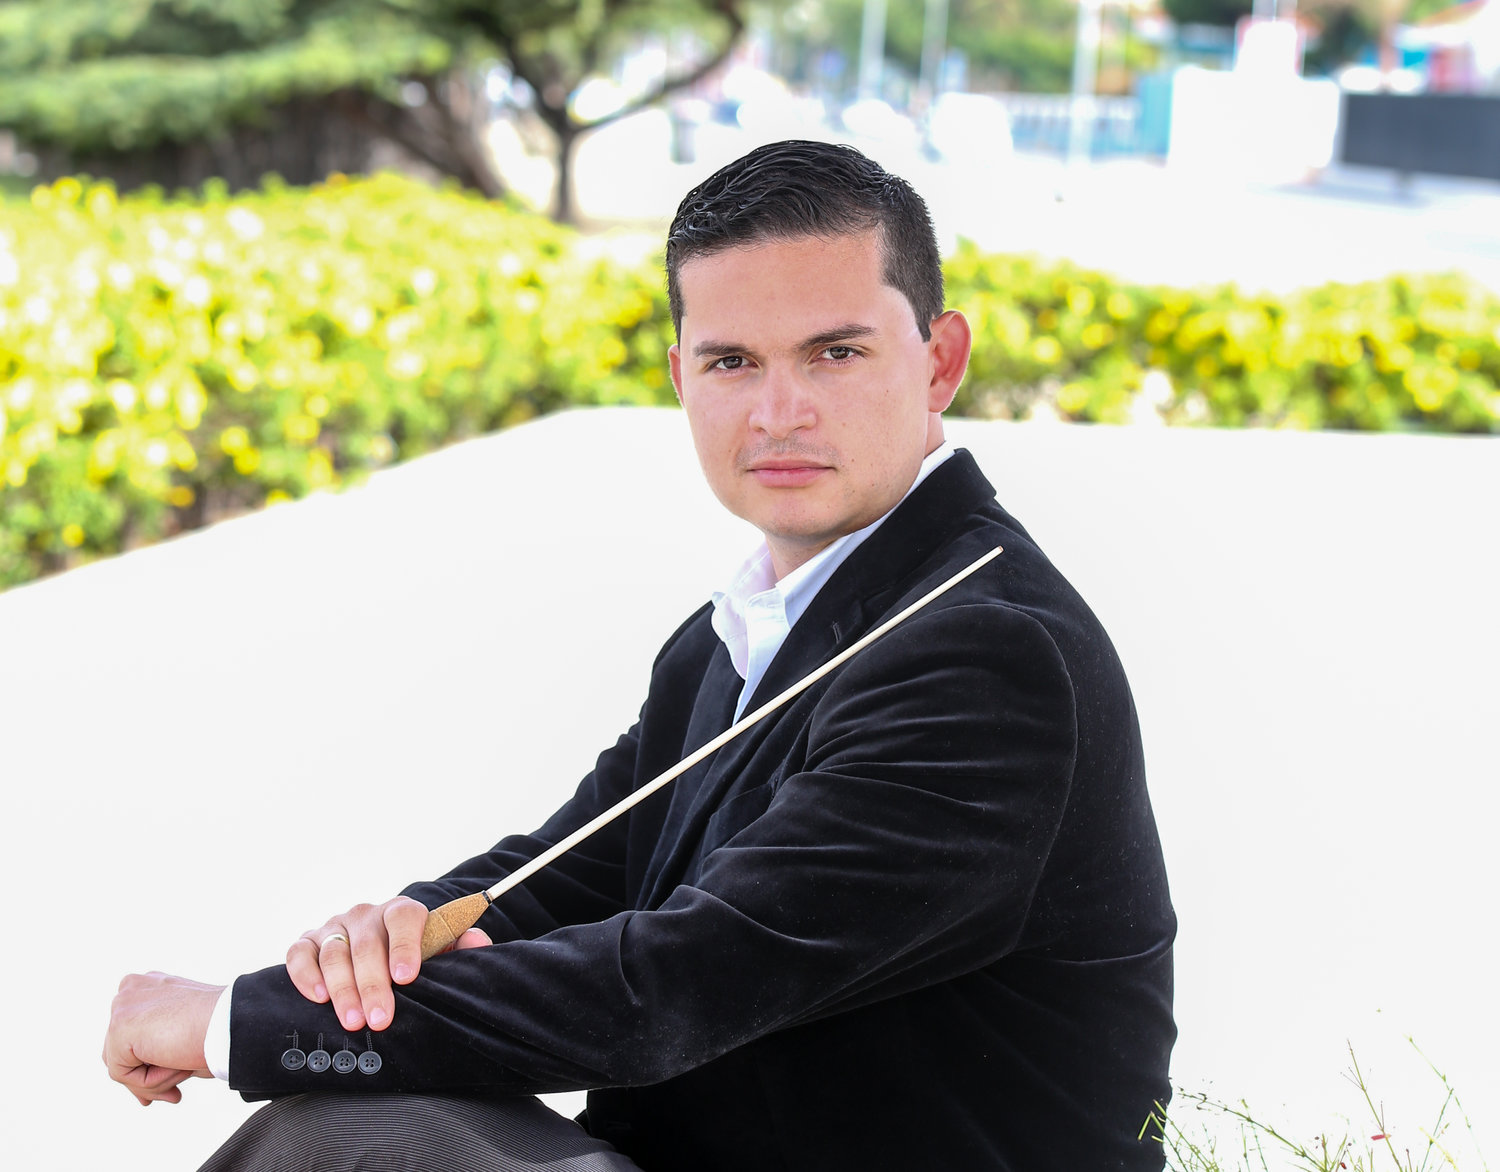 Conductor, musician, composer Simon Gollo of Las Cruces